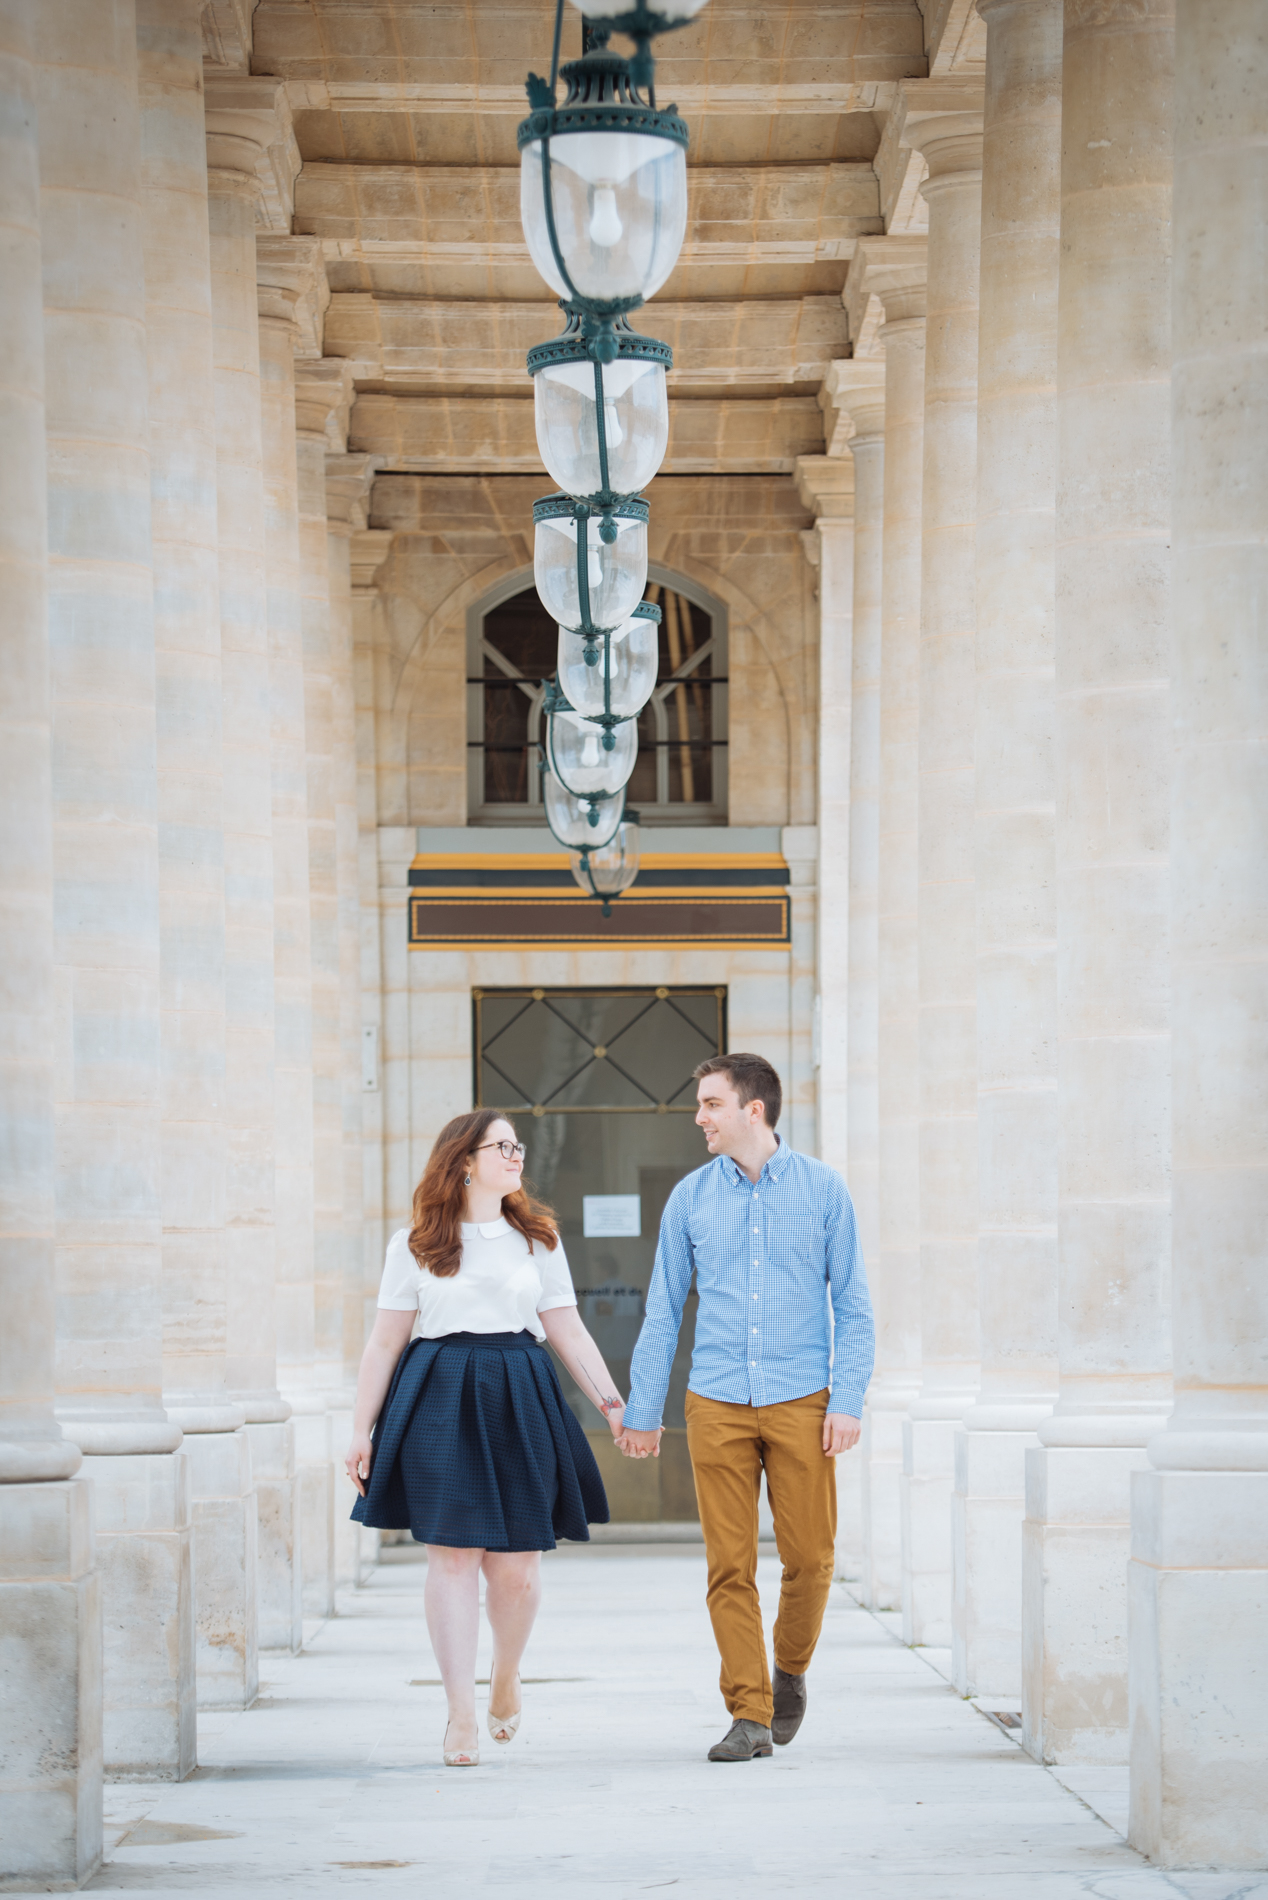 seance-engagement-paris-maldeme-photographe-palais royal-14